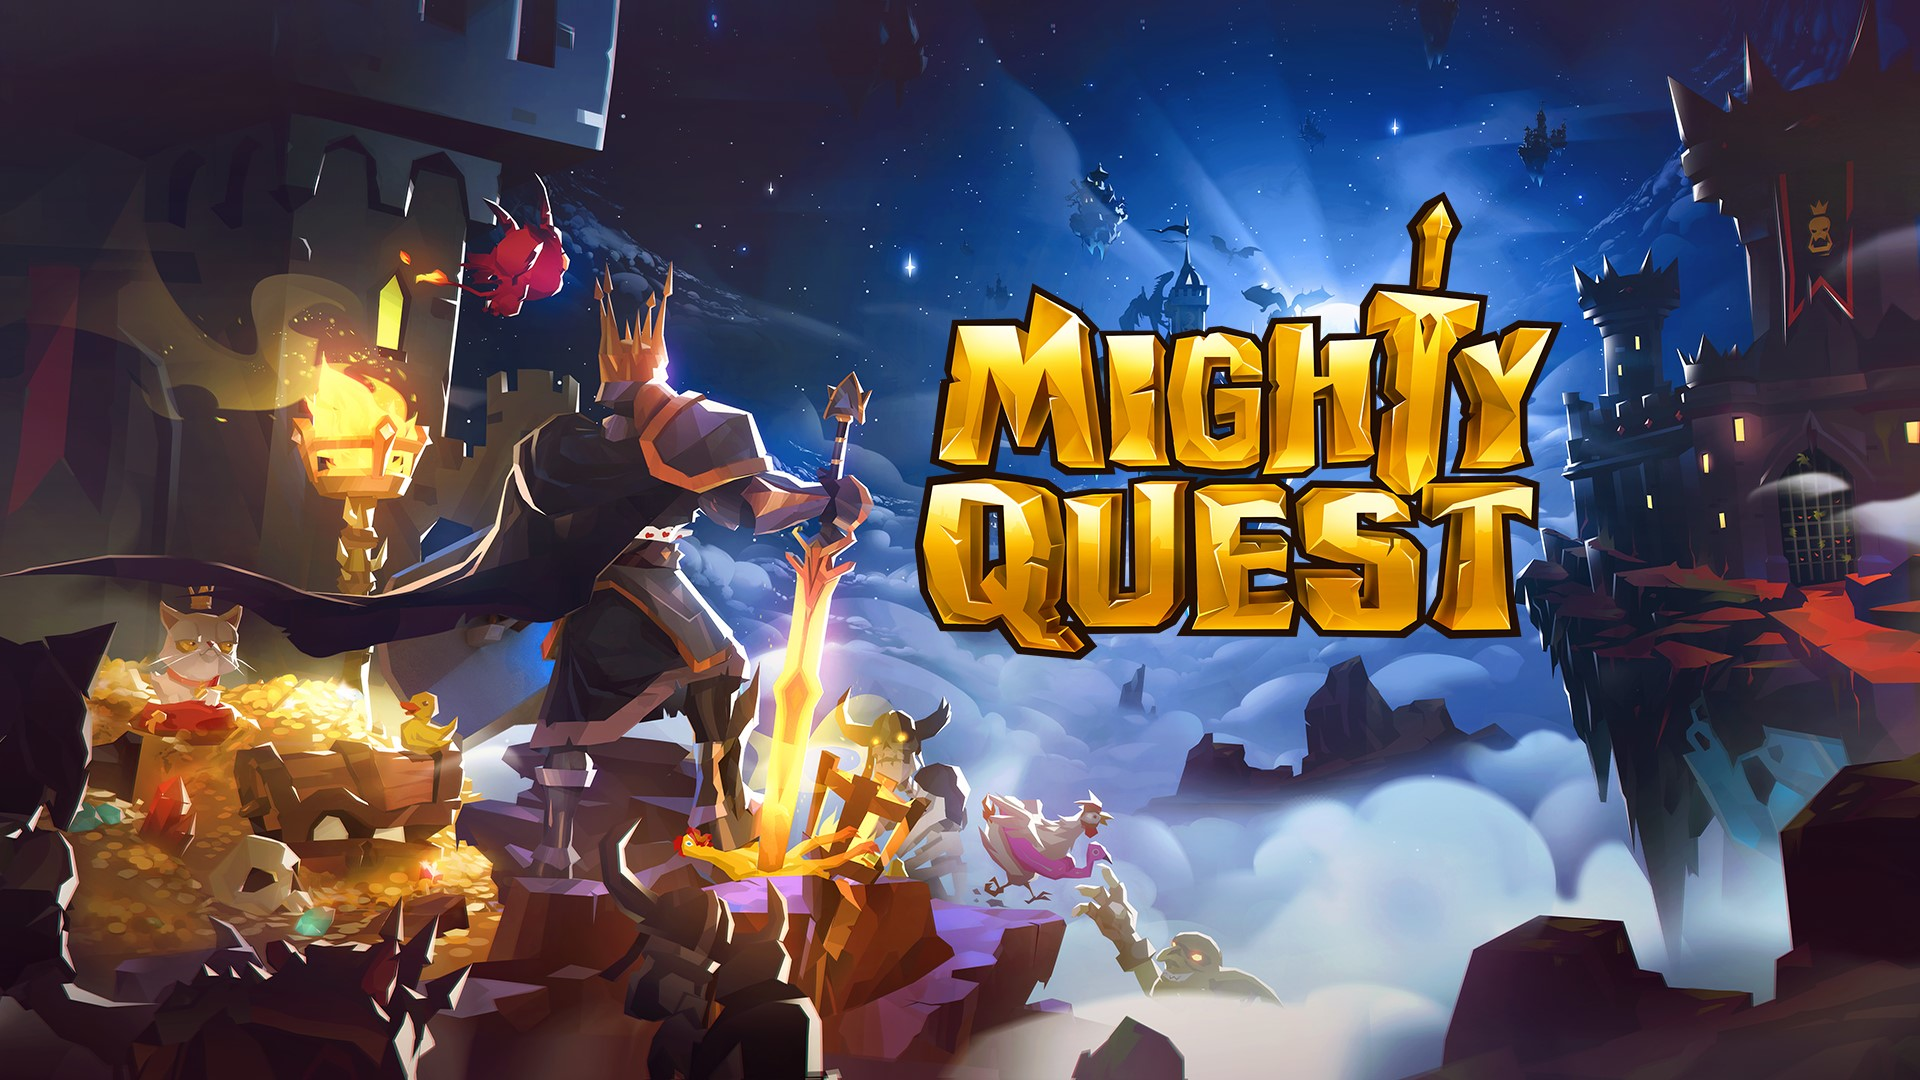 The Mighty Quest for Epic Loot вышла на iOS и Android